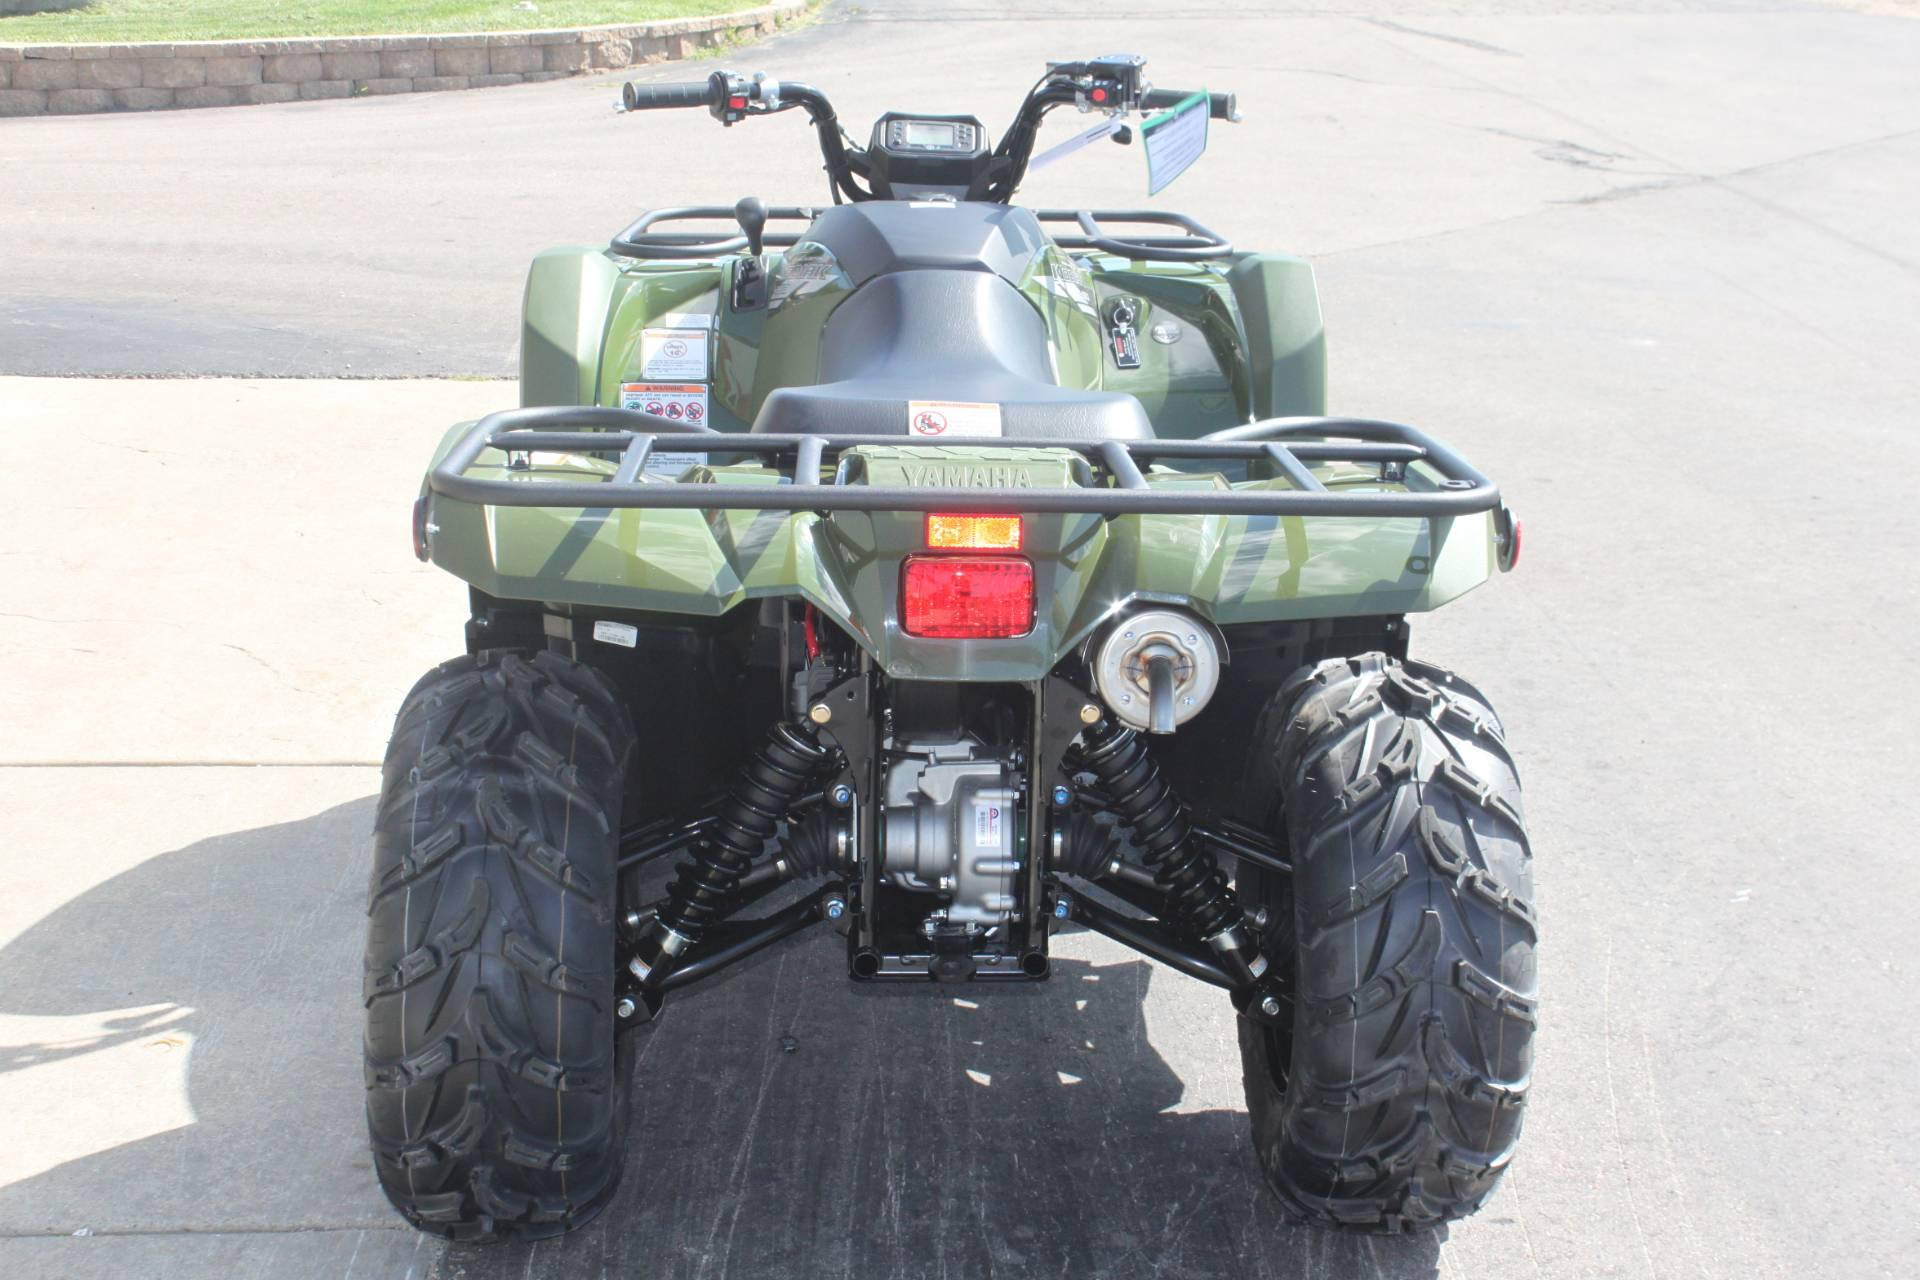 2020 Yamaha Kodiak 450 in Janesville, Wisconsin - Photo 7